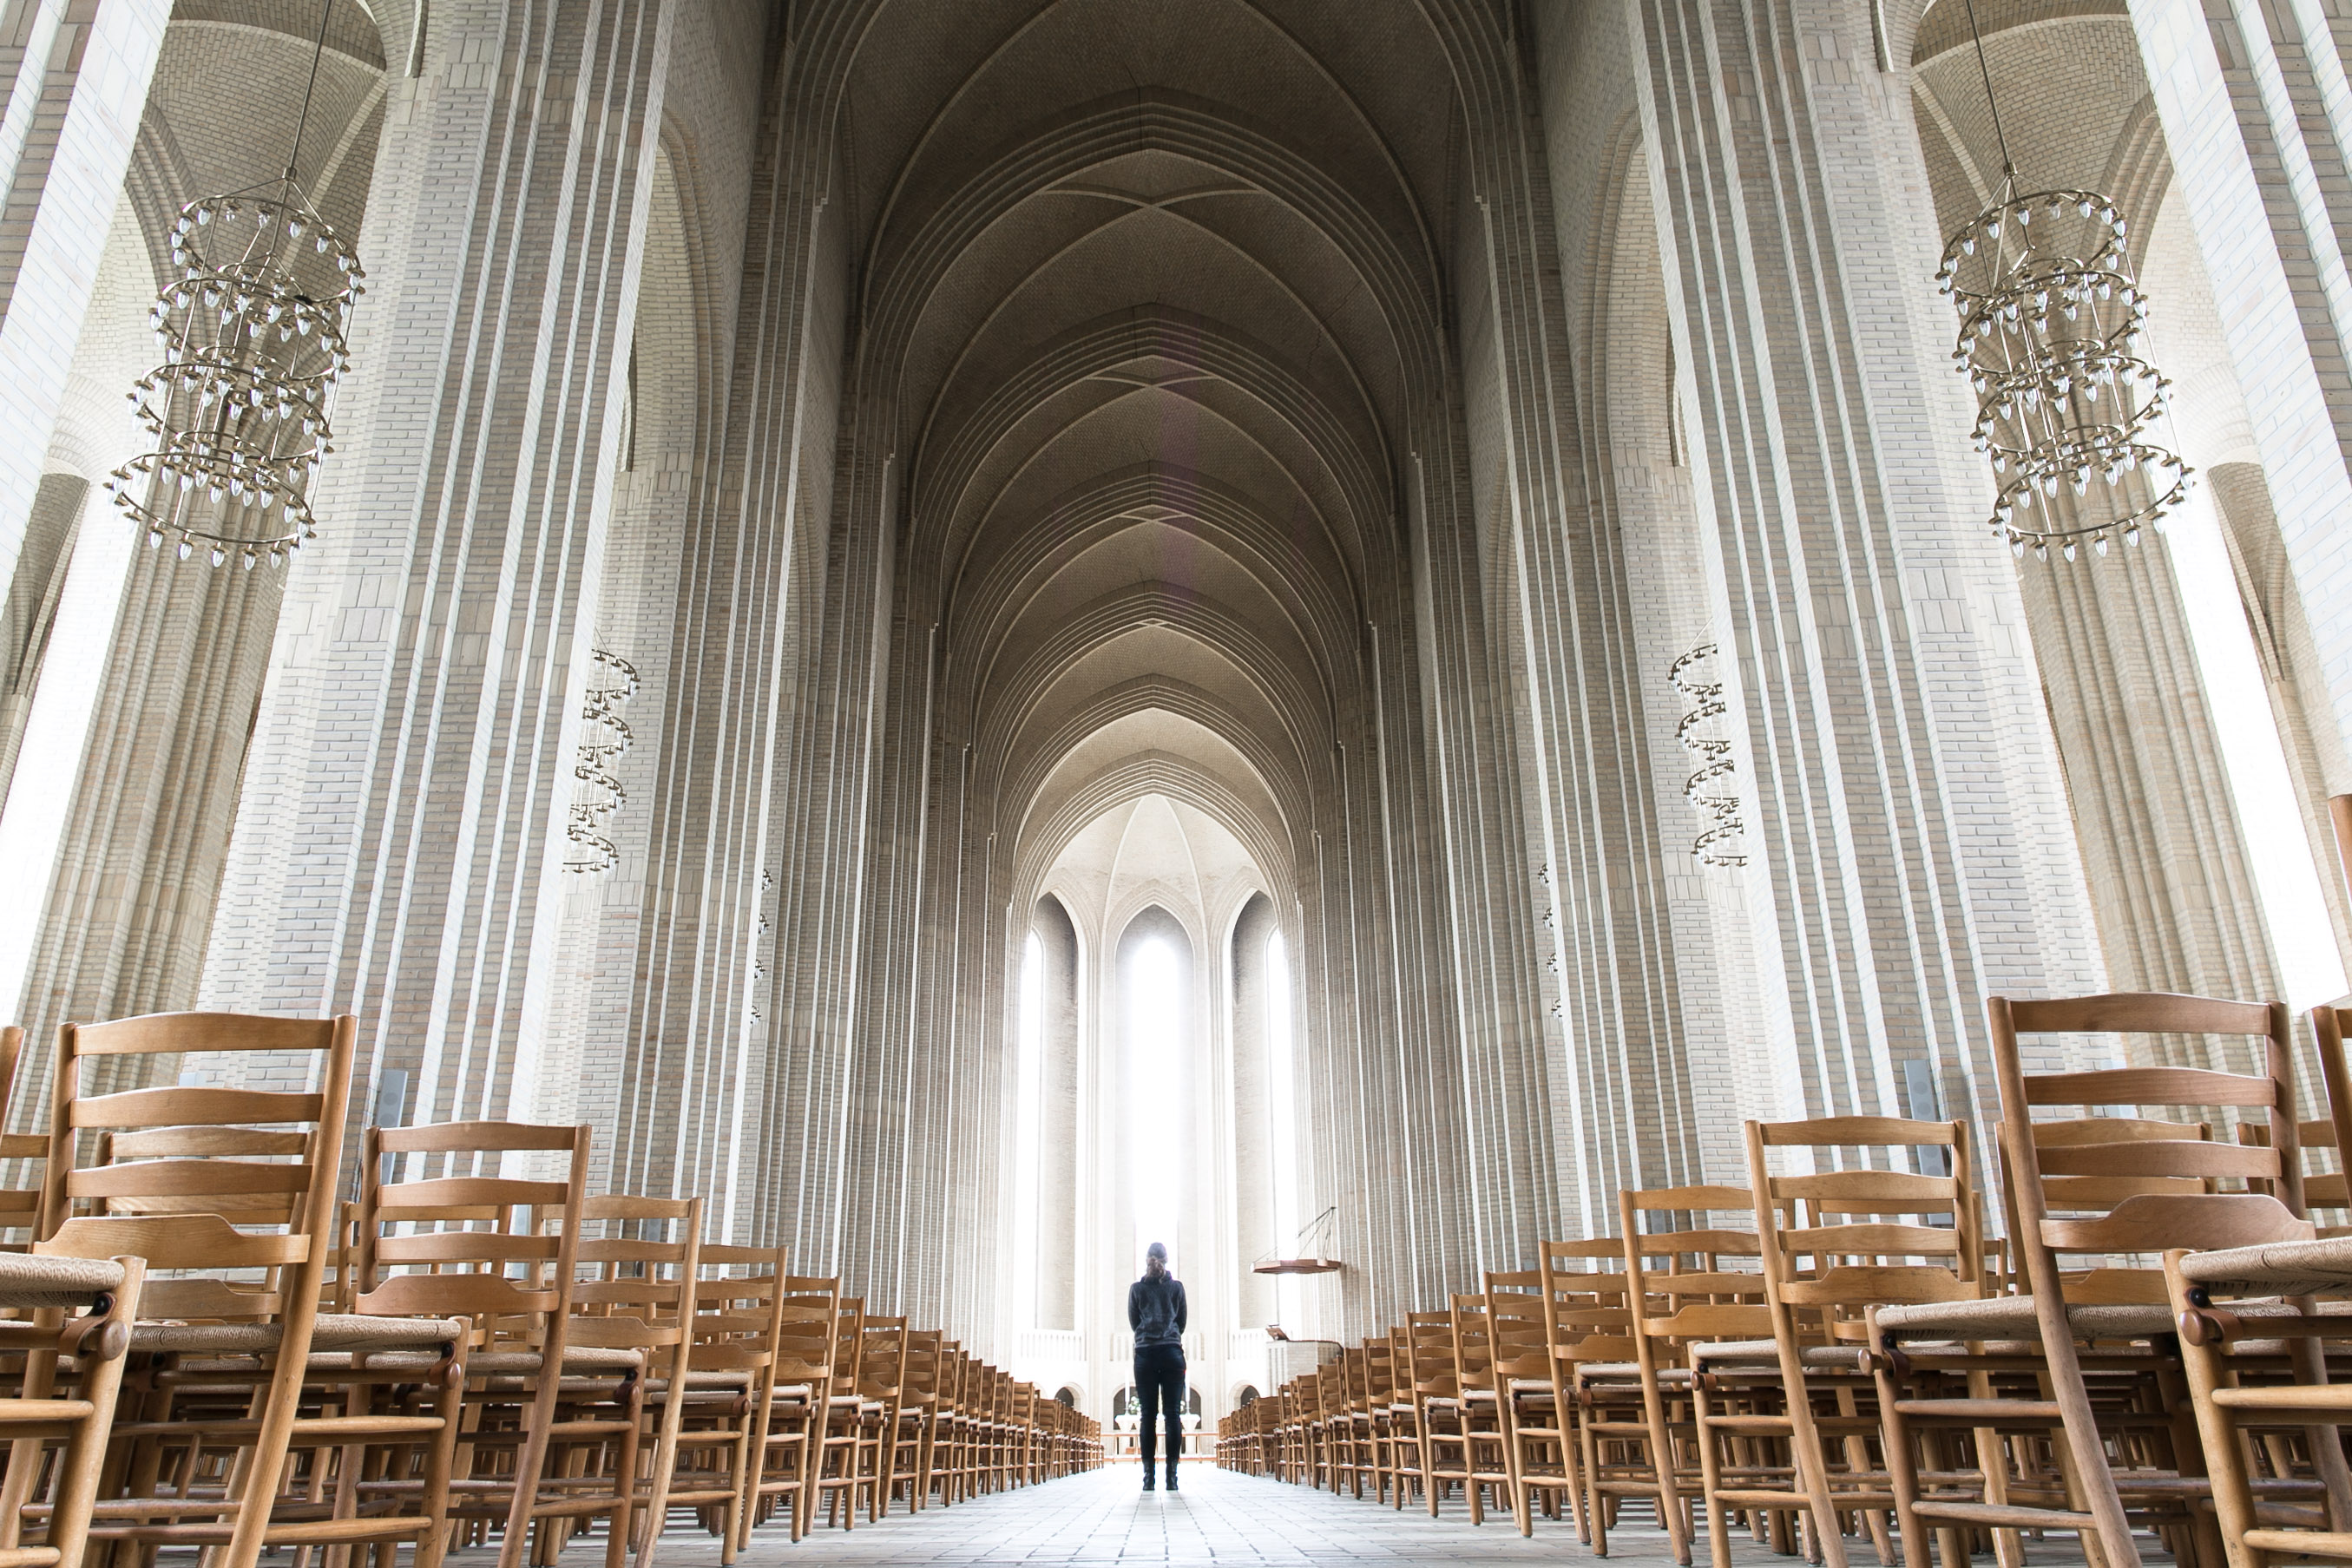 SEE & DO: GRUNDTVIG'S CHURCH